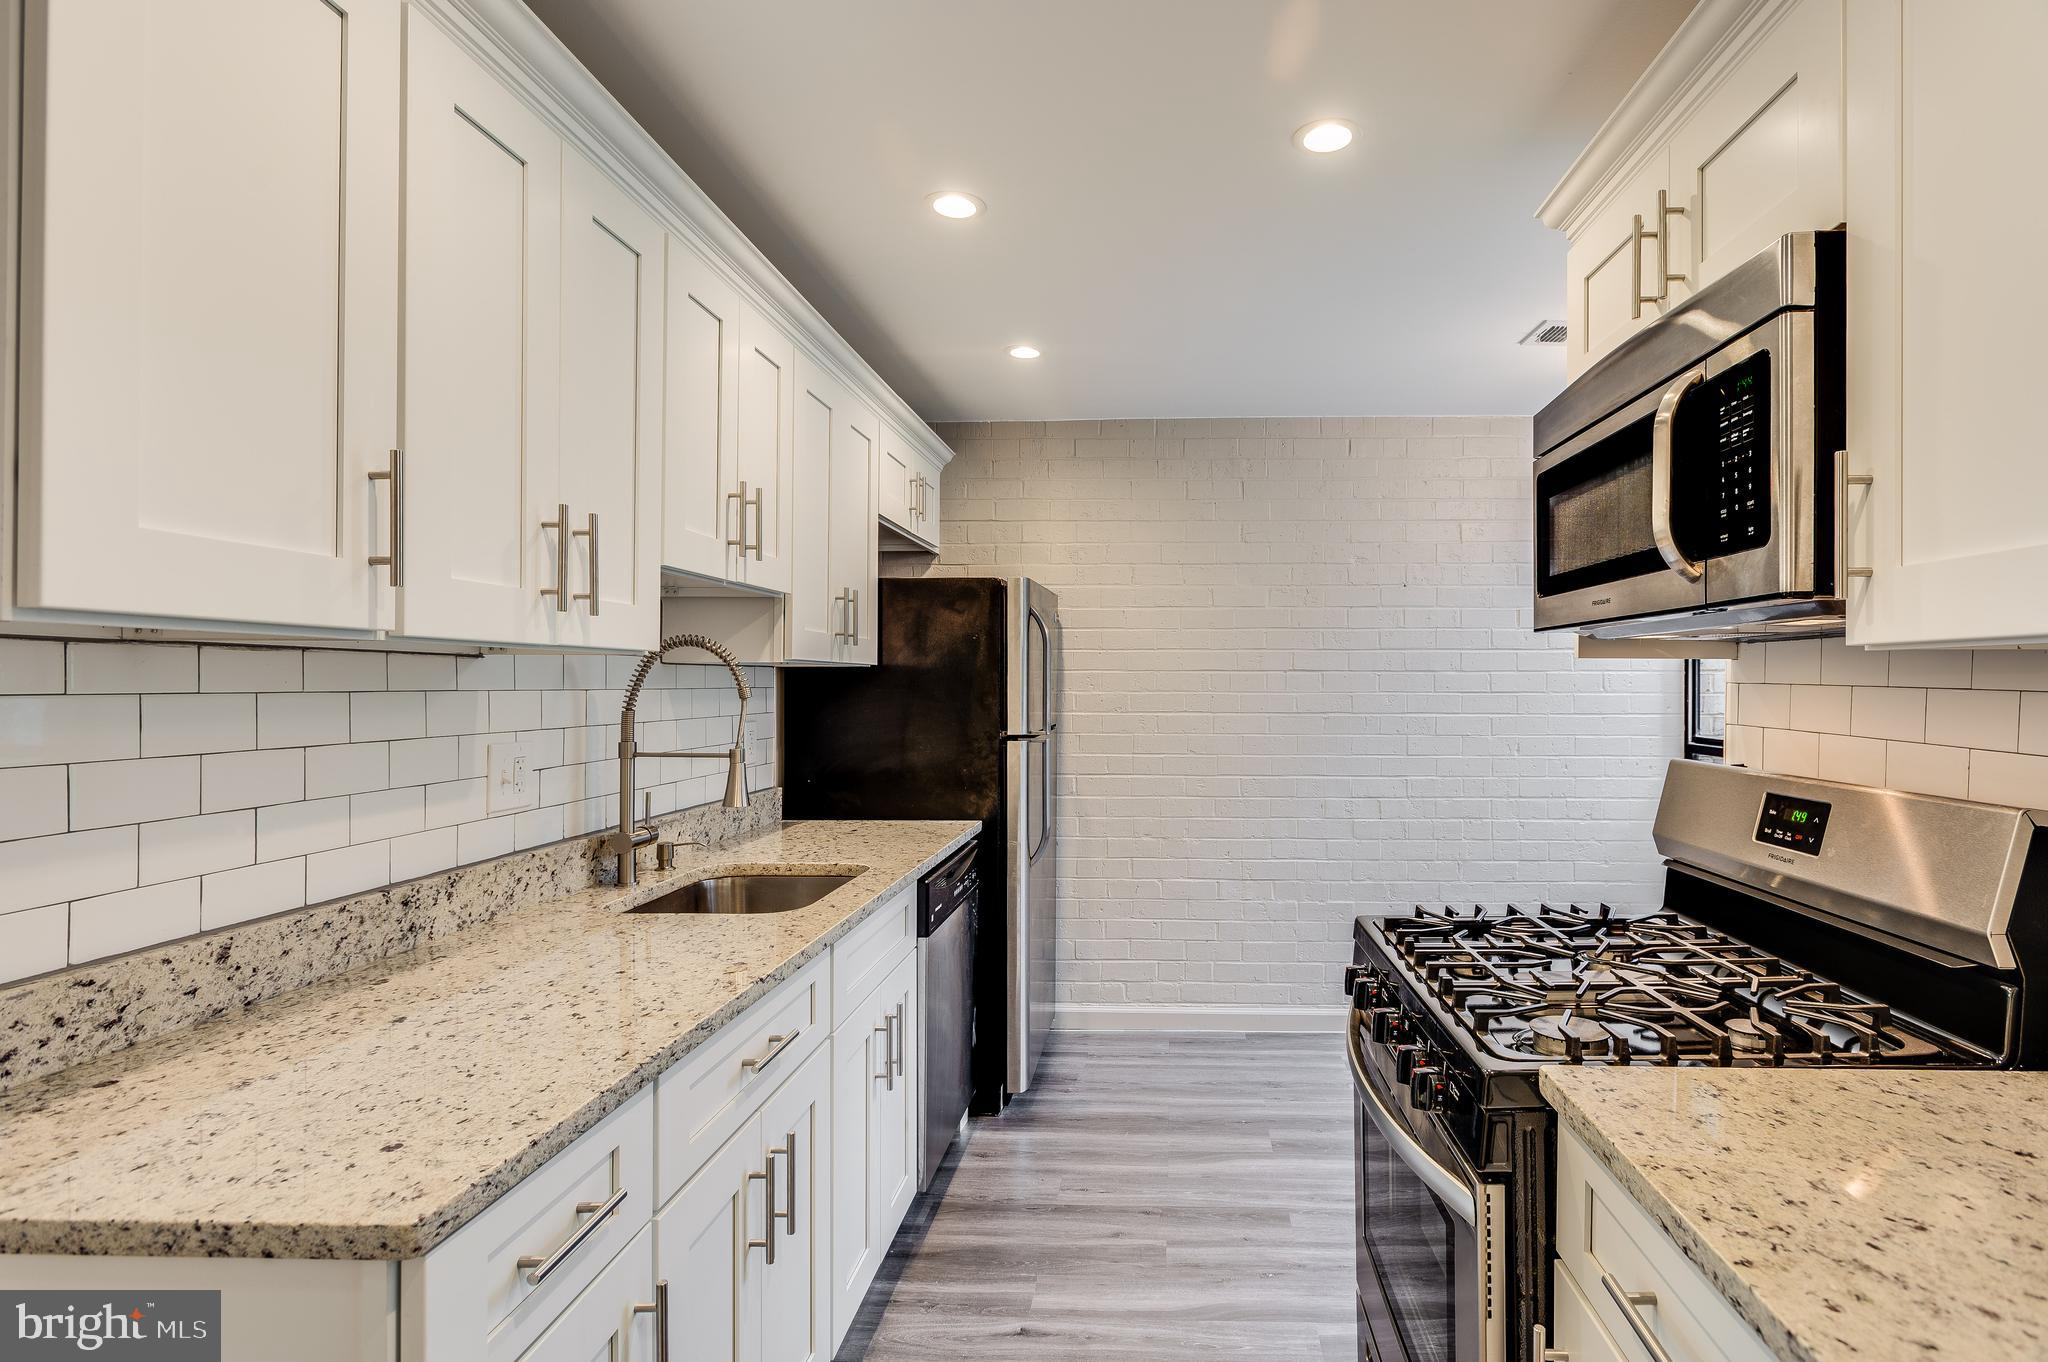 Fully Renovated 2 bed, 2 bath ground floor condominium in the Huntley Square community. This clean c